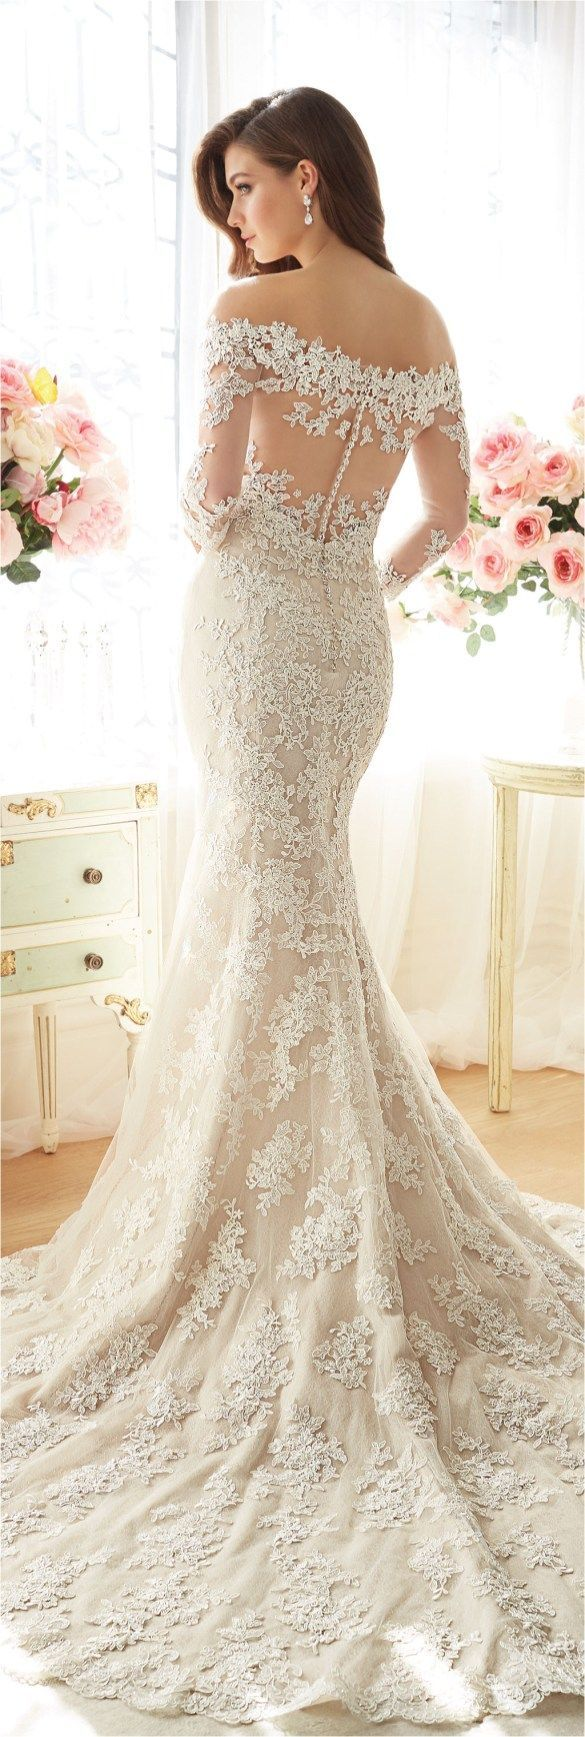 Lace sleeves wedding dresses dream wedding in